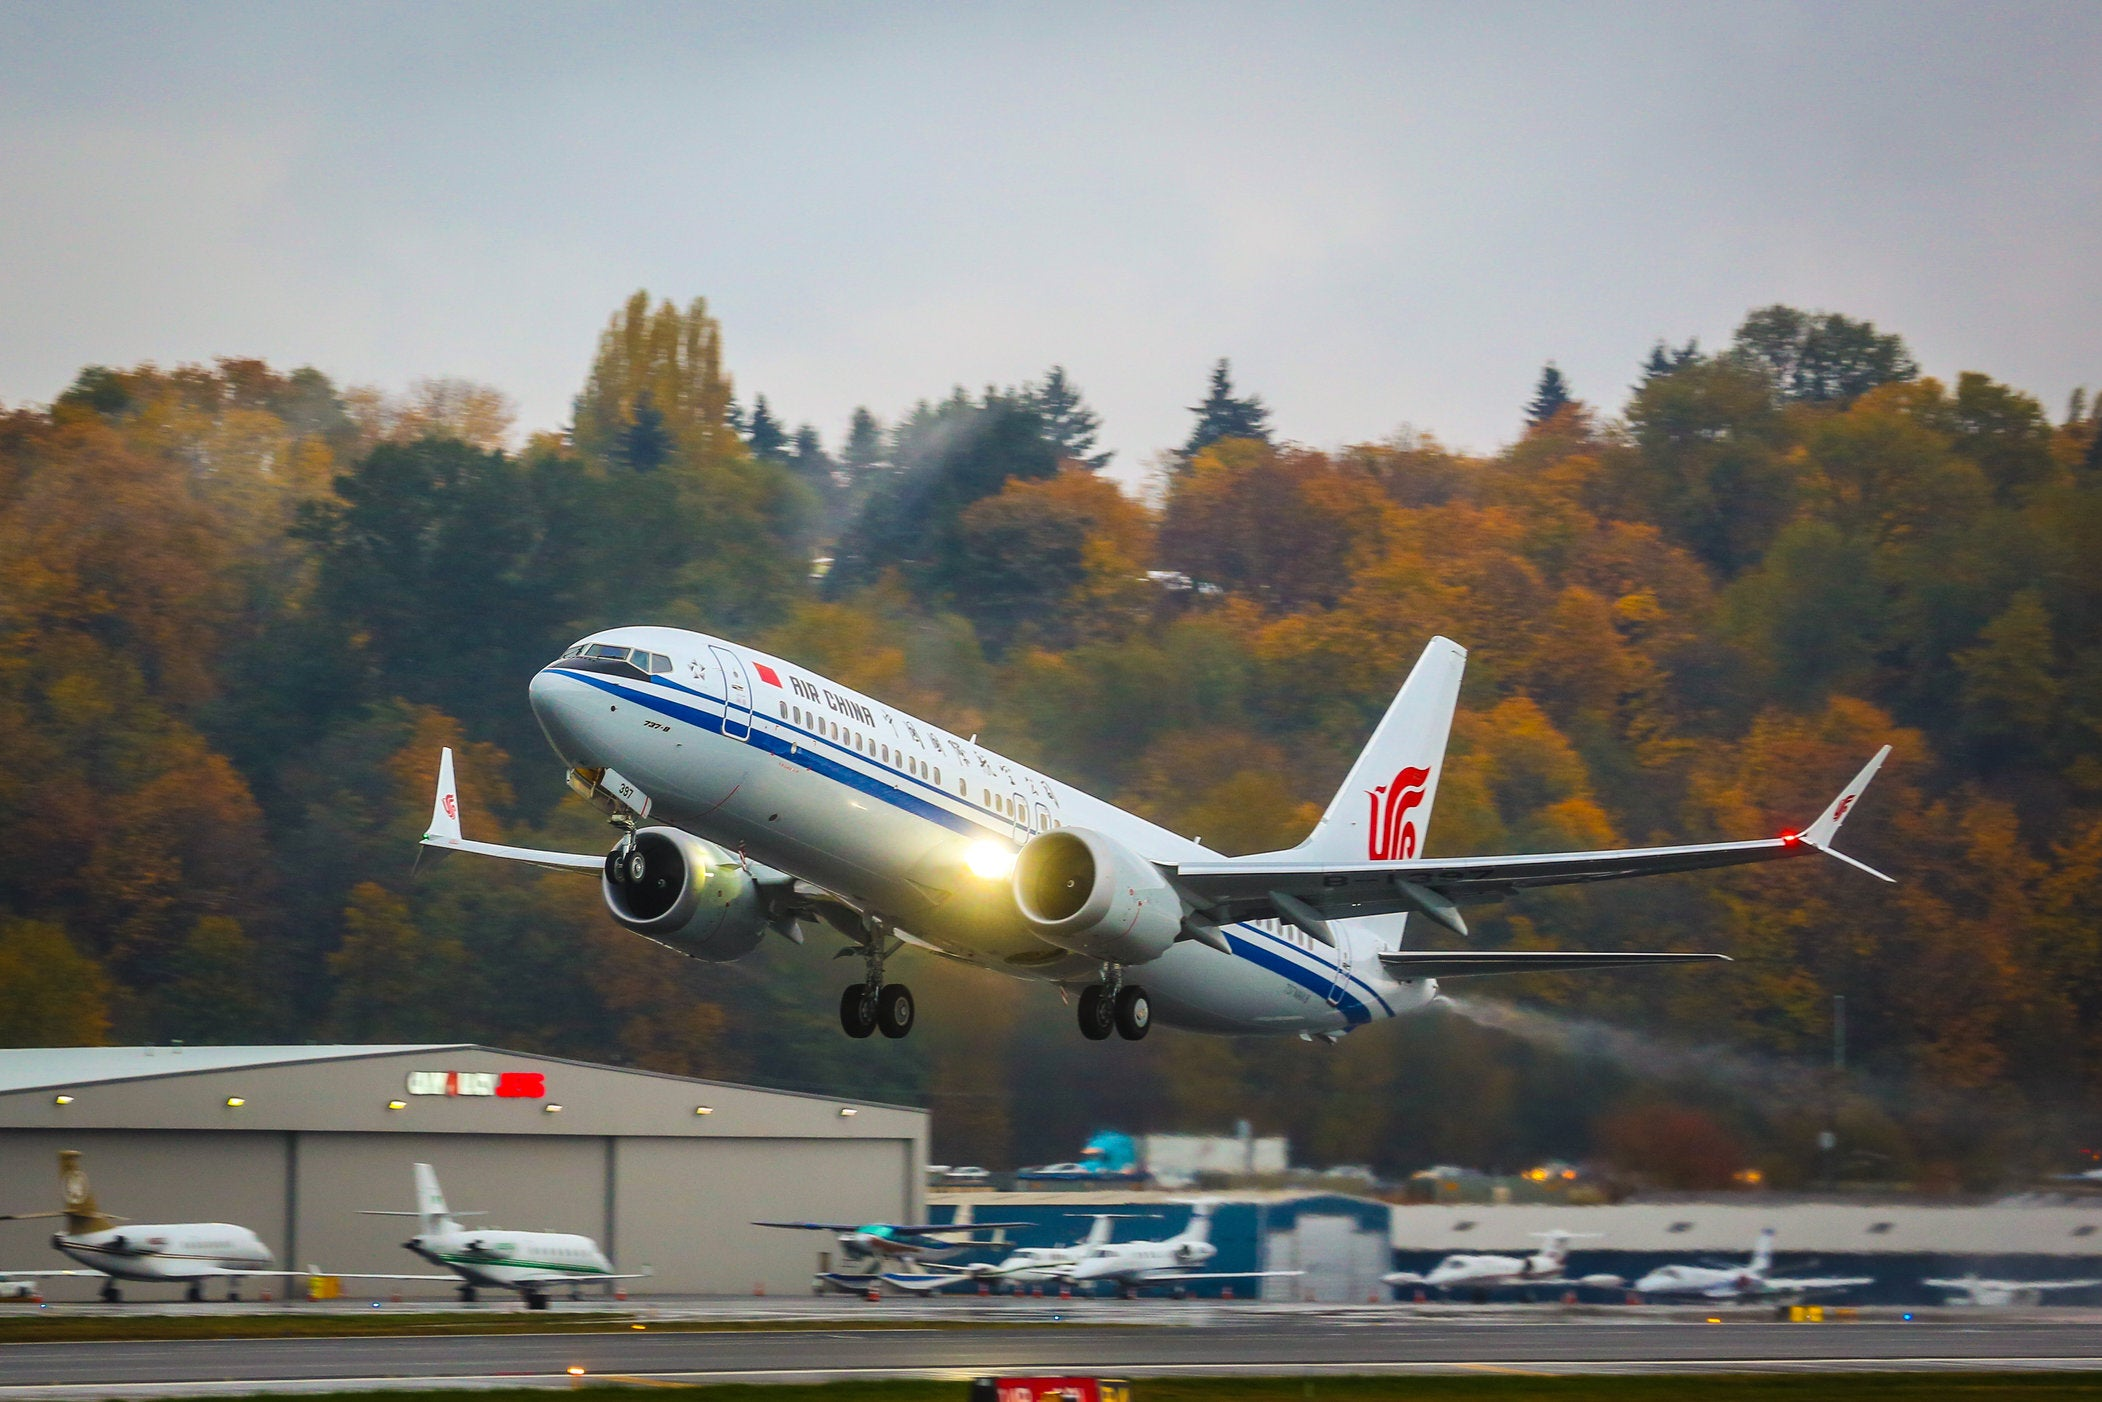 A Boeing 737 MAX 8 jet taking off.